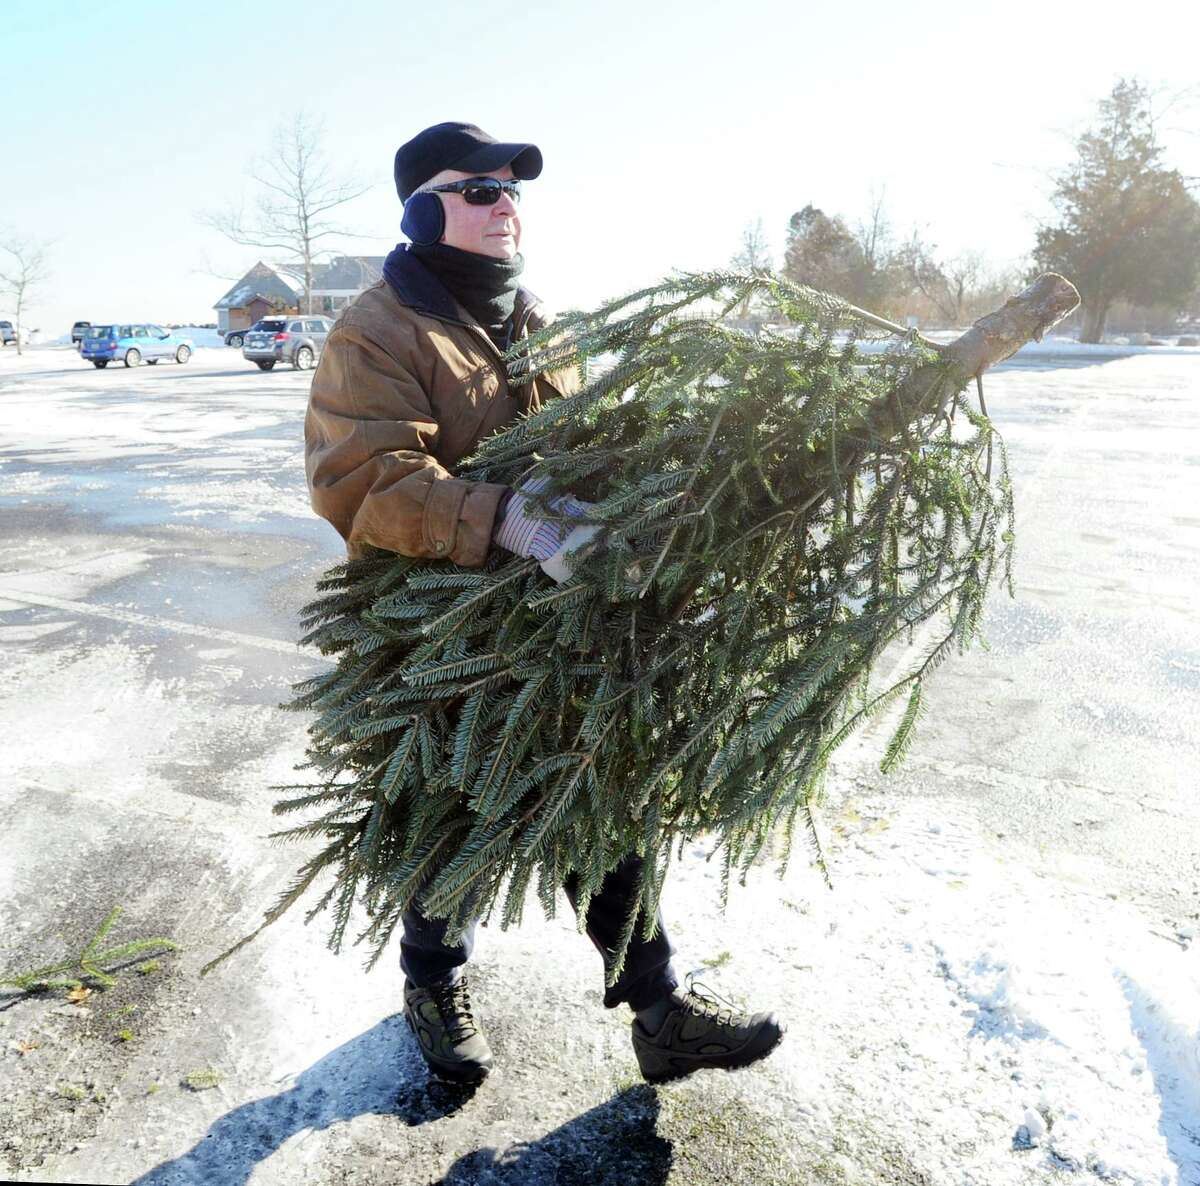 An Old Greenwich man unloads his Christmas tree from the trunk of his car before placing it in the recycling pile at Greenwich Point in this archive picture. Middletown is offering free recycling this year.